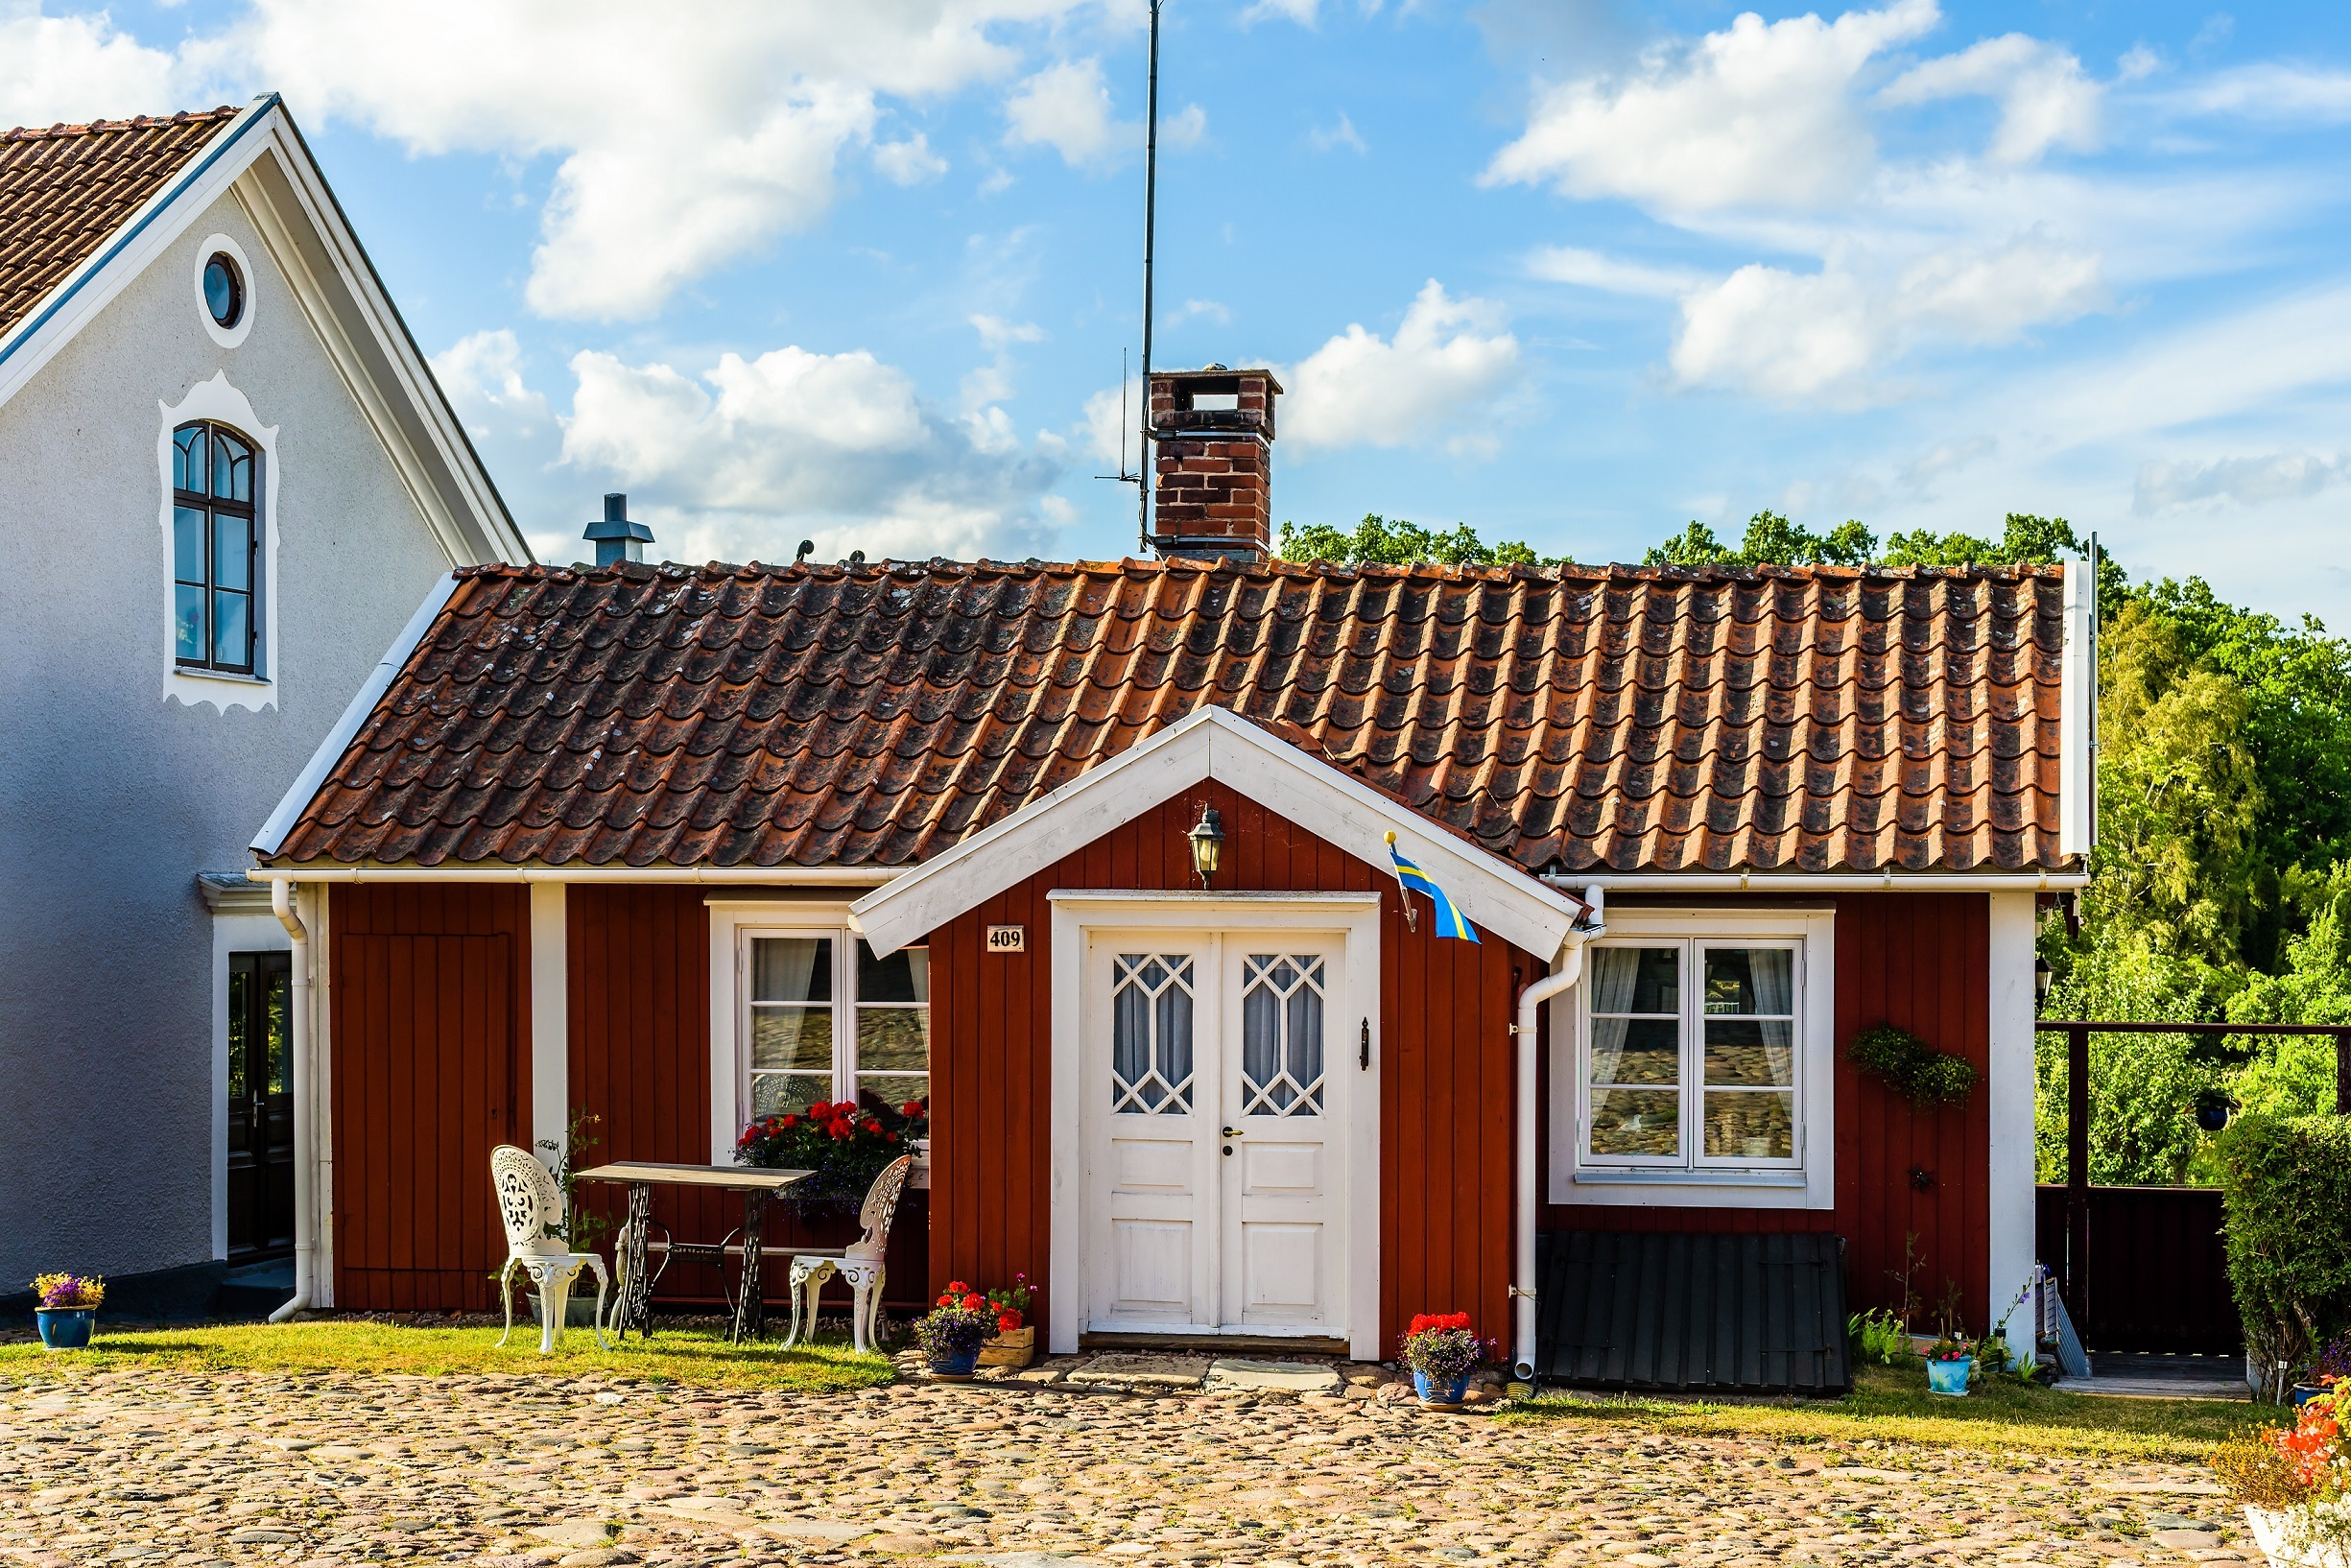 Tiny red house